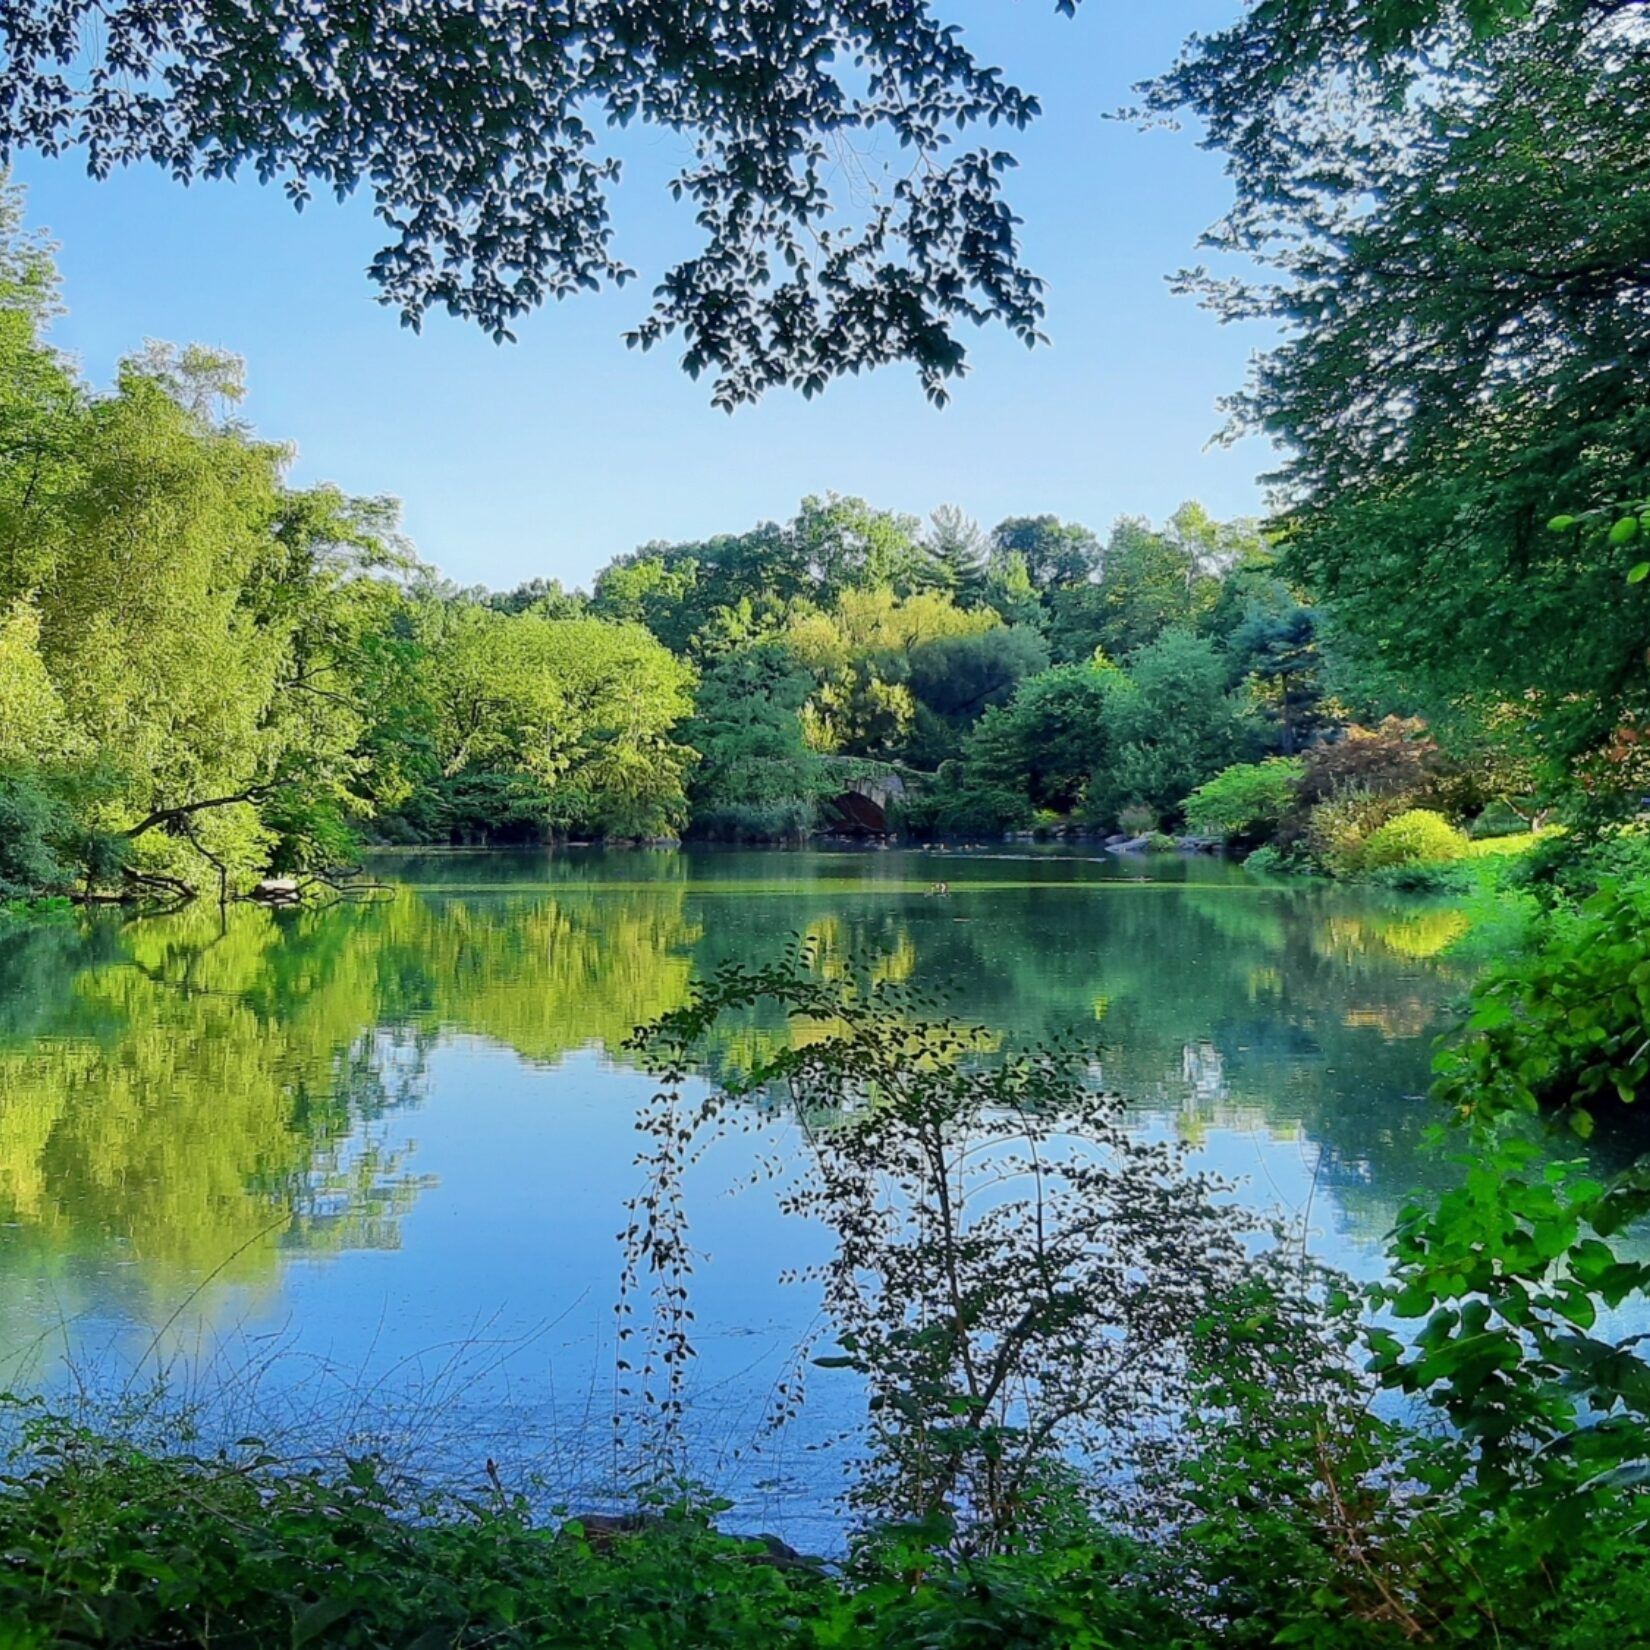 Green trees are reflected on the placid water under summer skies